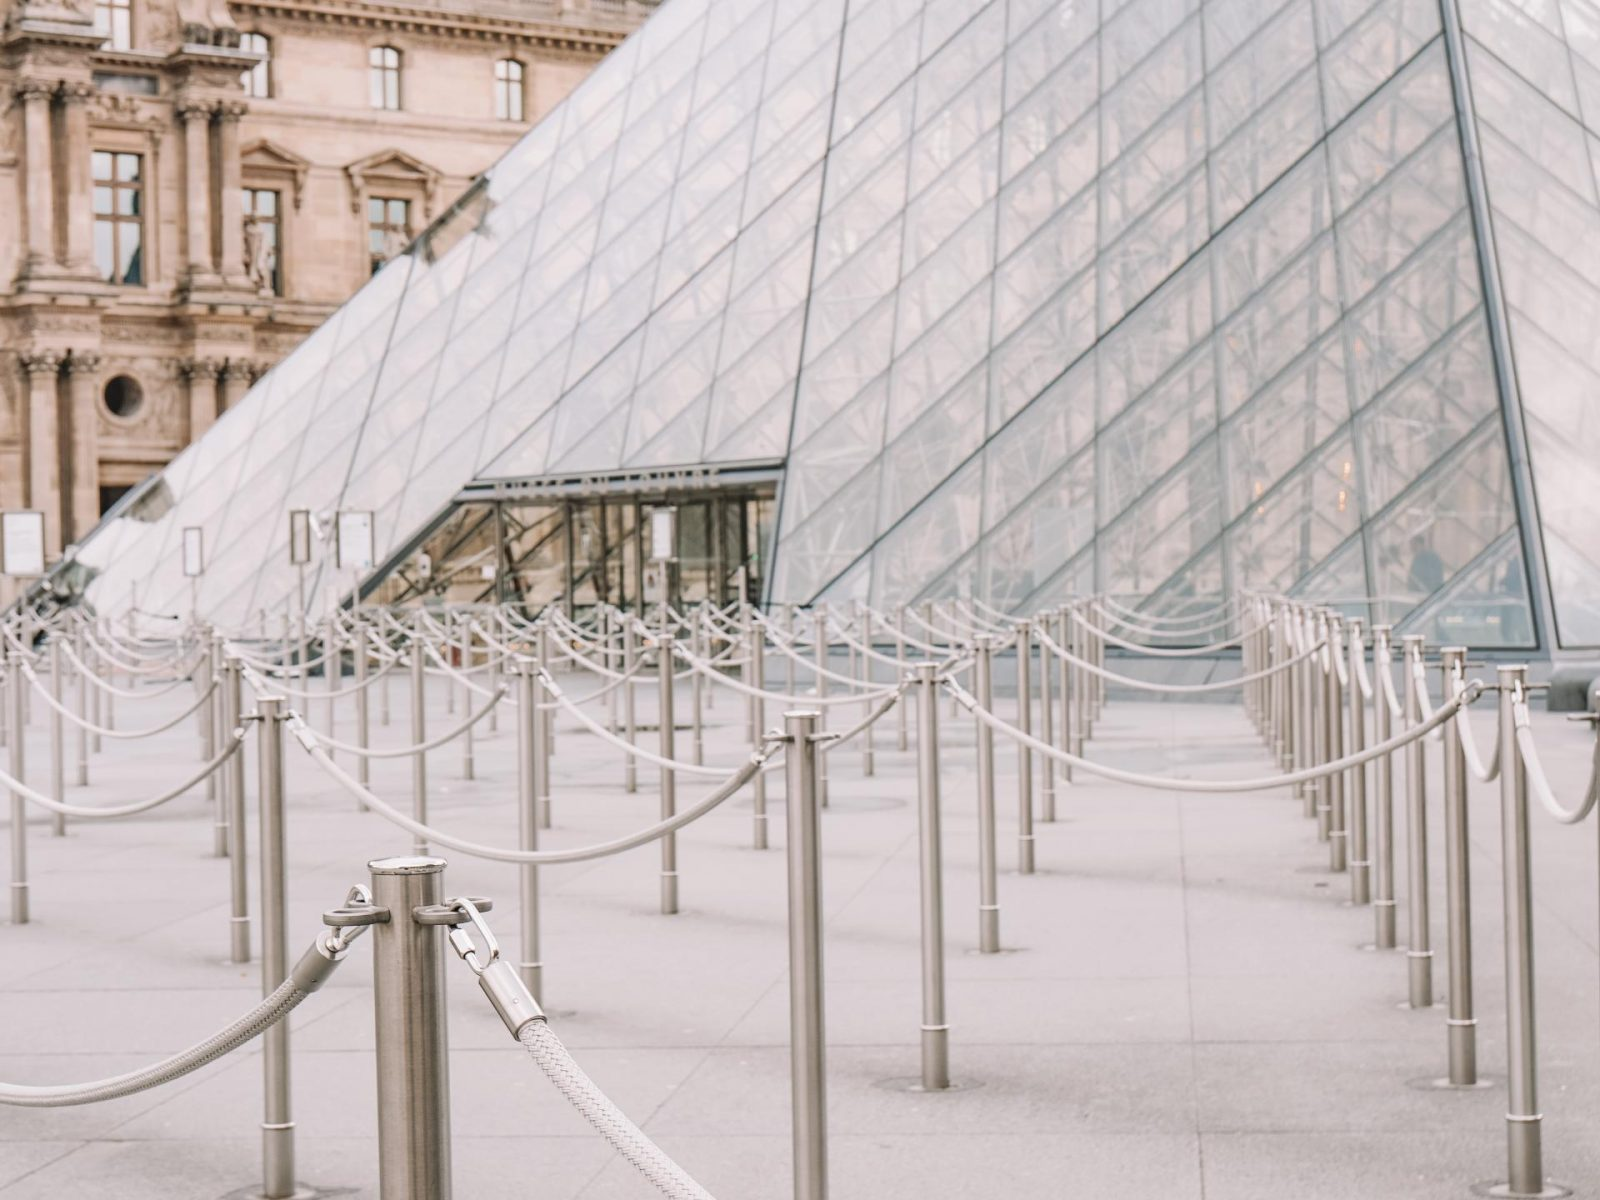 How to Skip the line at Tourist Attractions in Paris